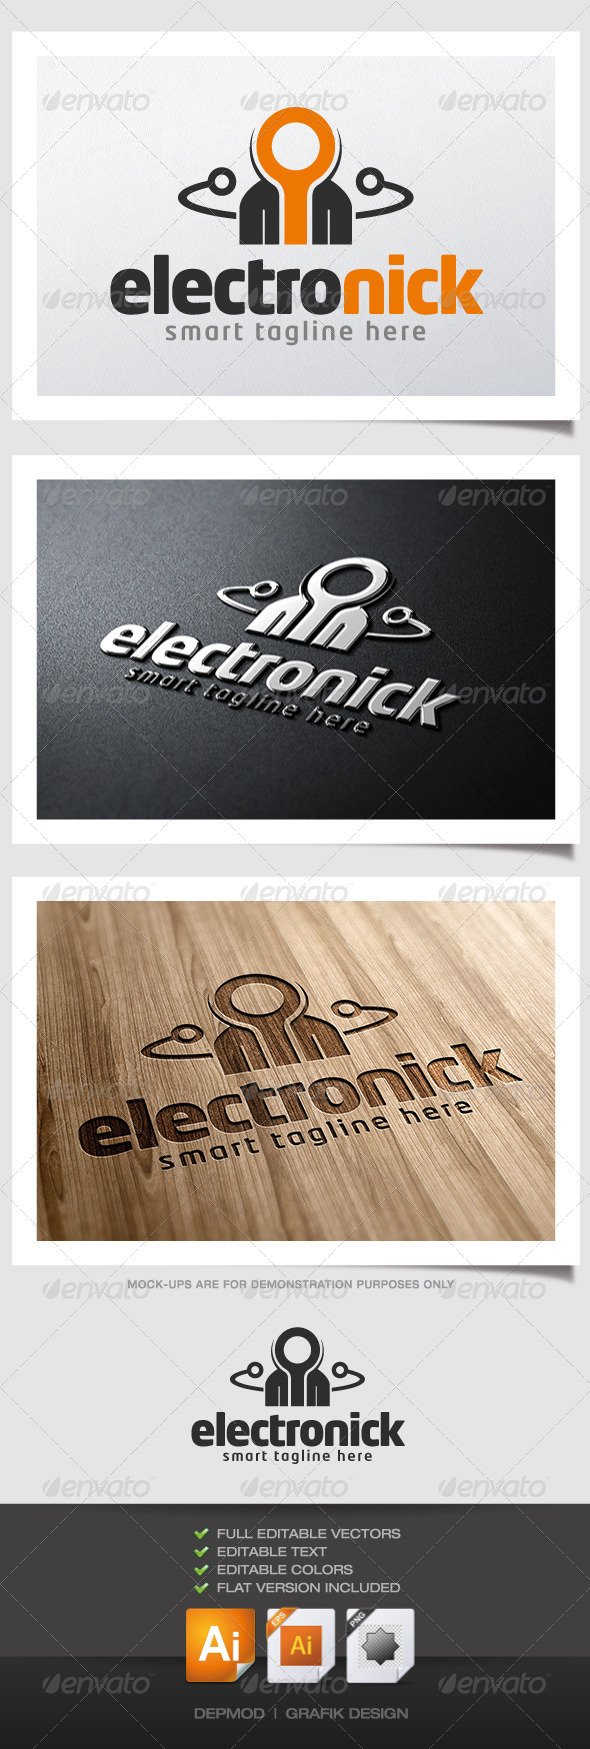 GraphicRiver Electronick Logo 4638638